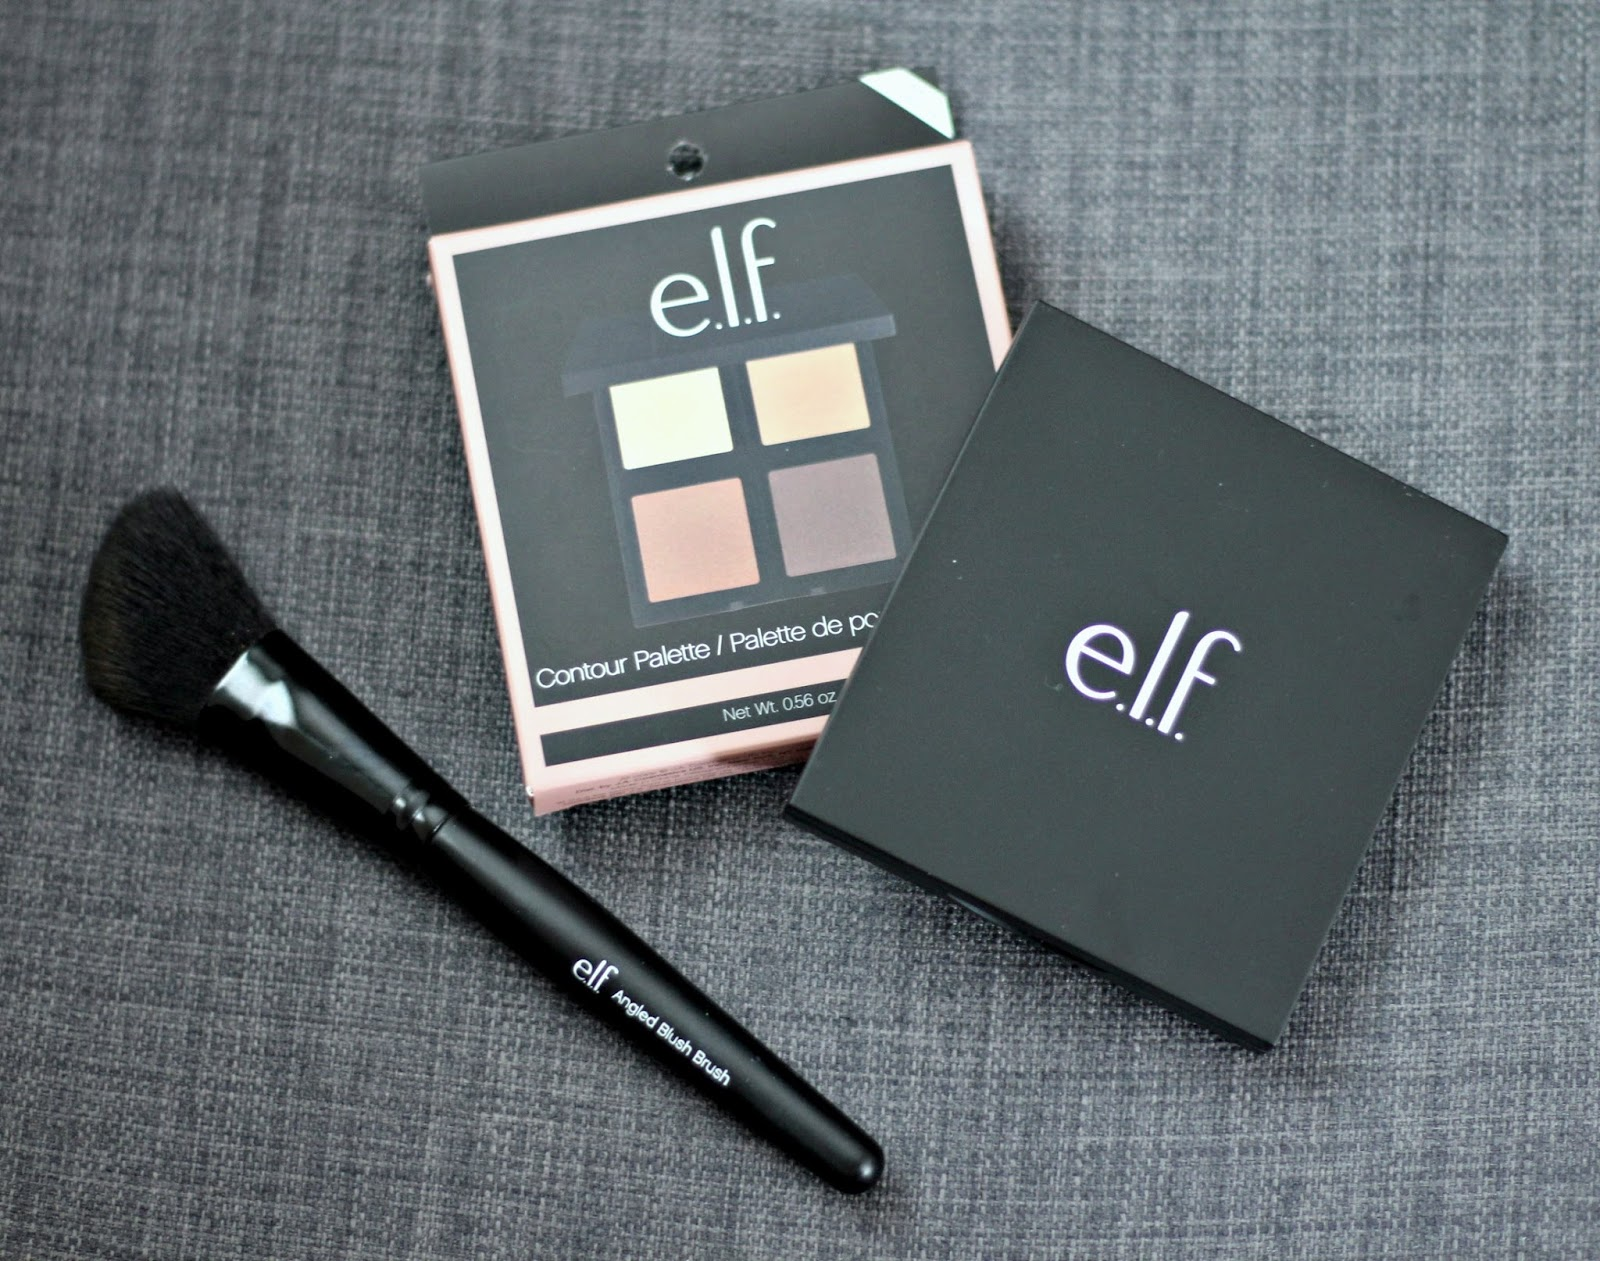 Raincouver beauty vancouver beauty lifestyle travel blog elf i really love the formula of these powders but found it difficult to fully utilize all four shades i think having all these steps over complicate normal ccuart Choice Image